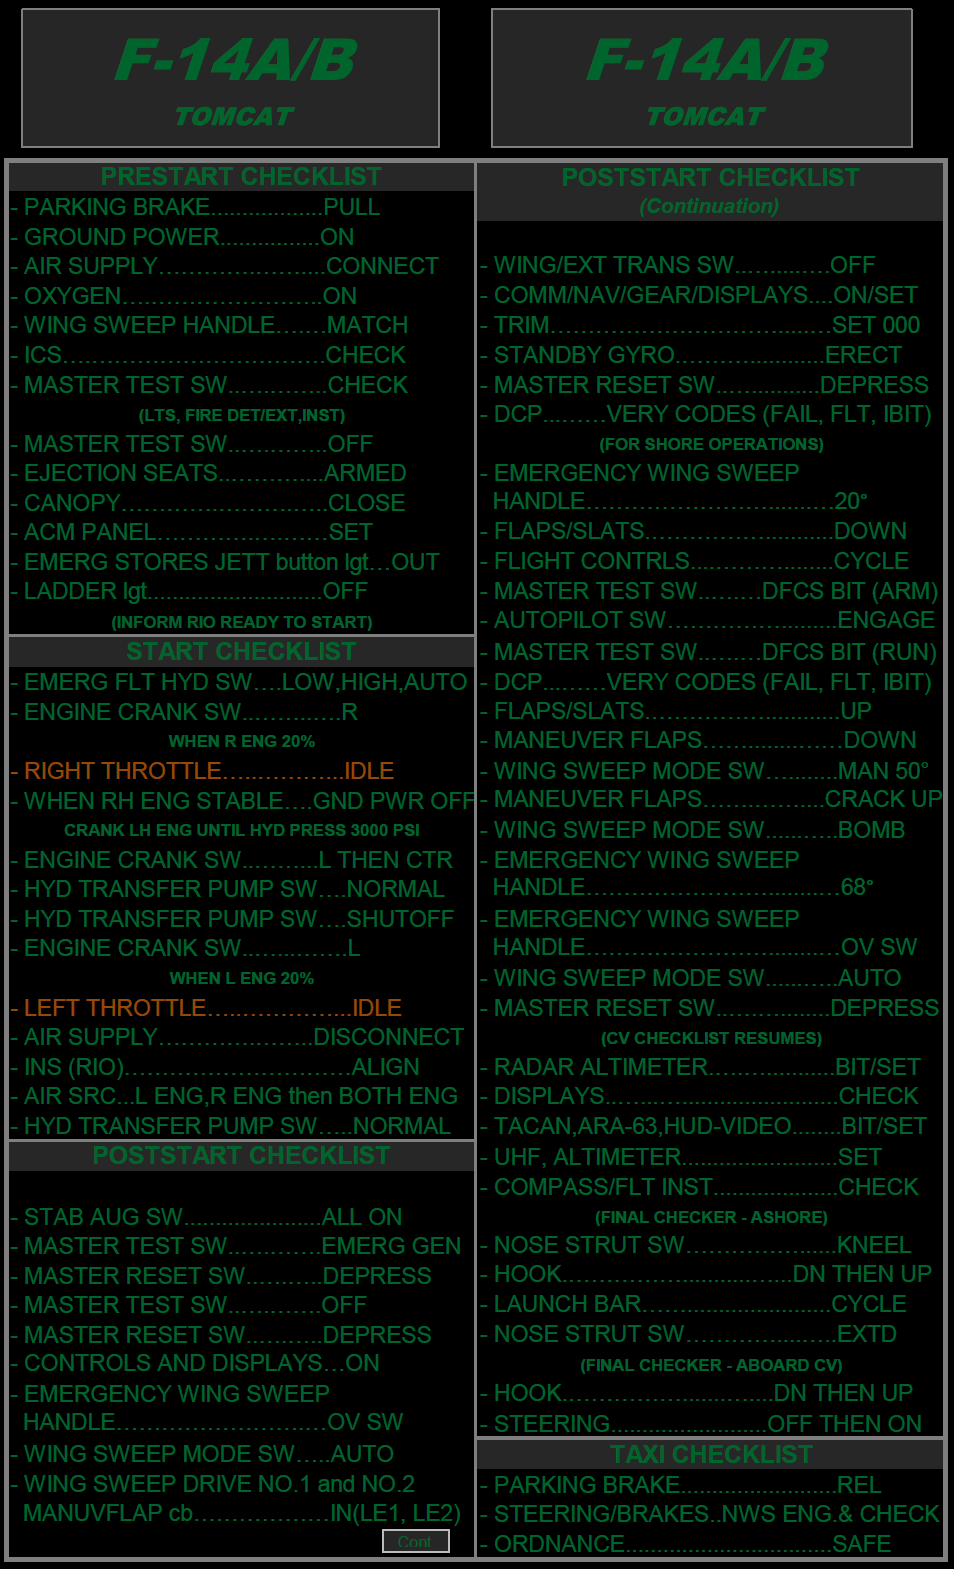 F-14A/B Tomcat Night Quick Checklist.